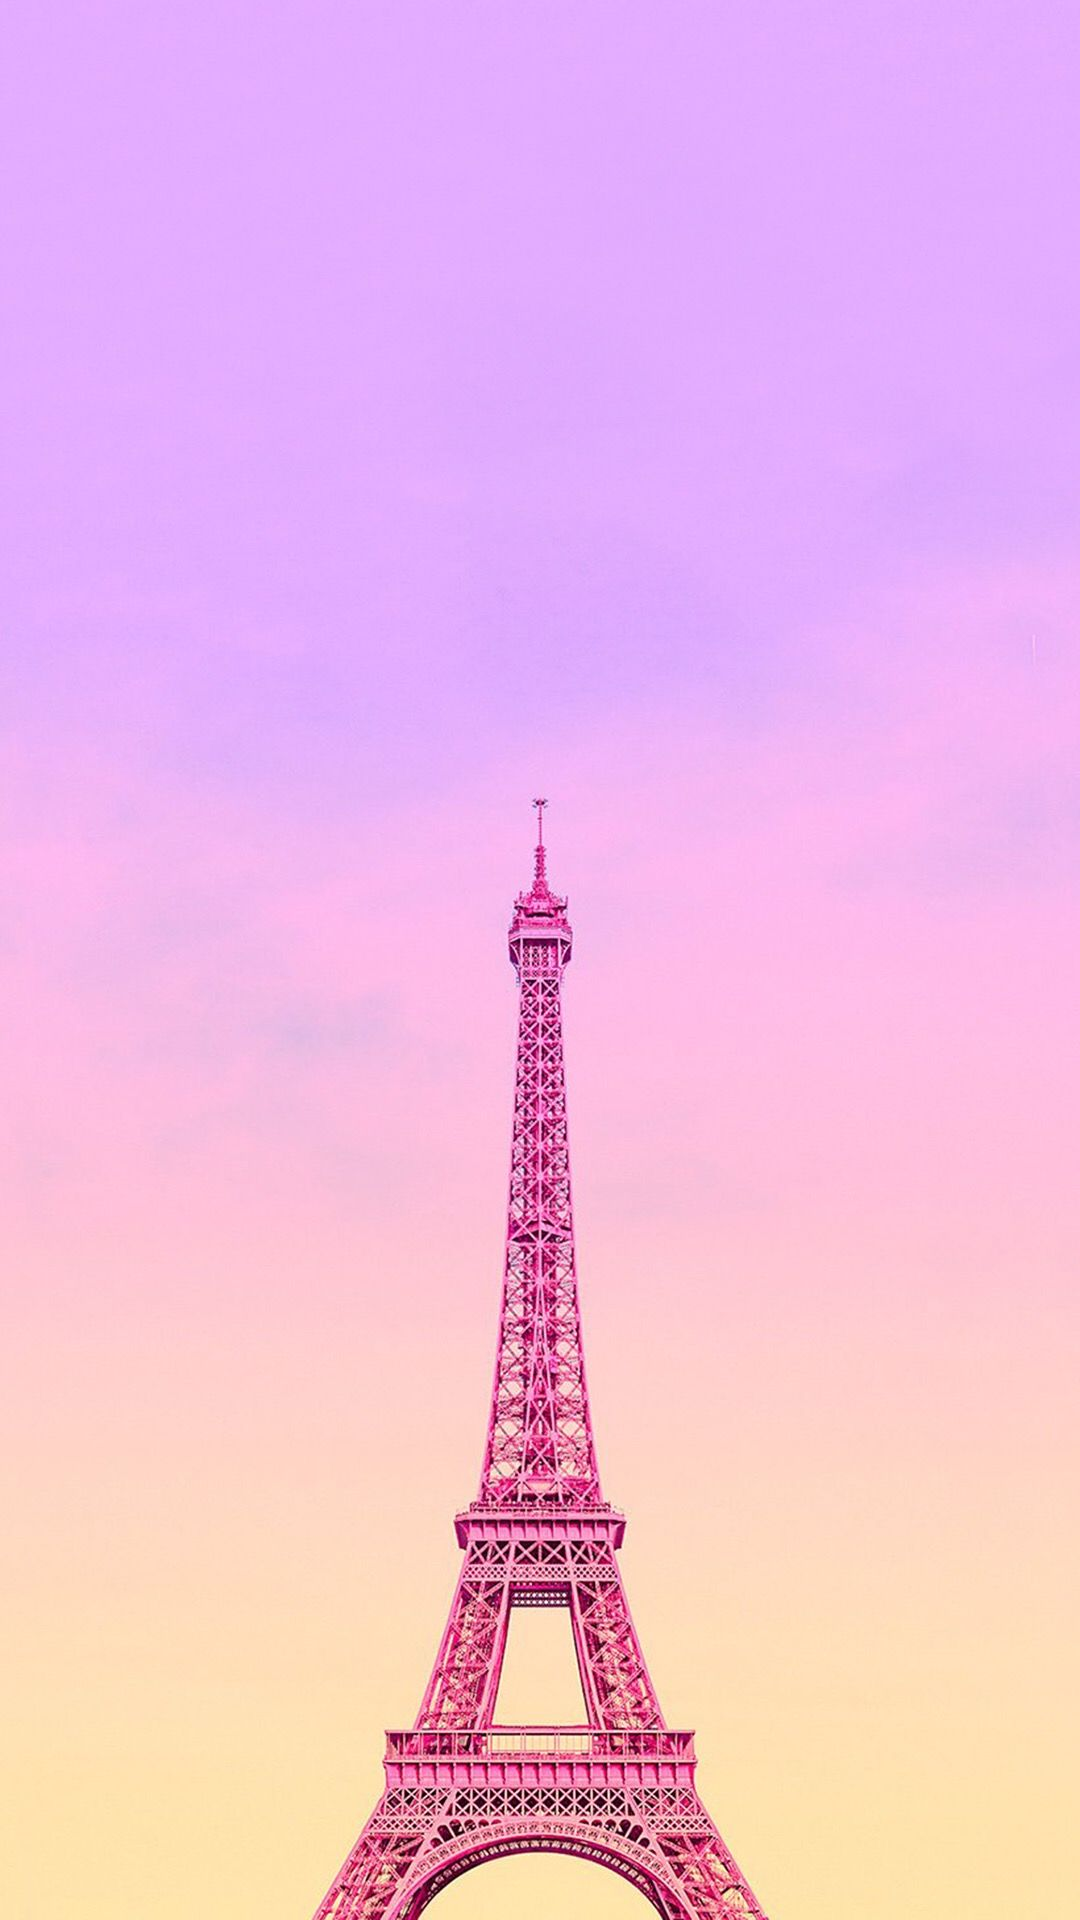 Pin by Clementine on Pink Wallpapers Pinterest